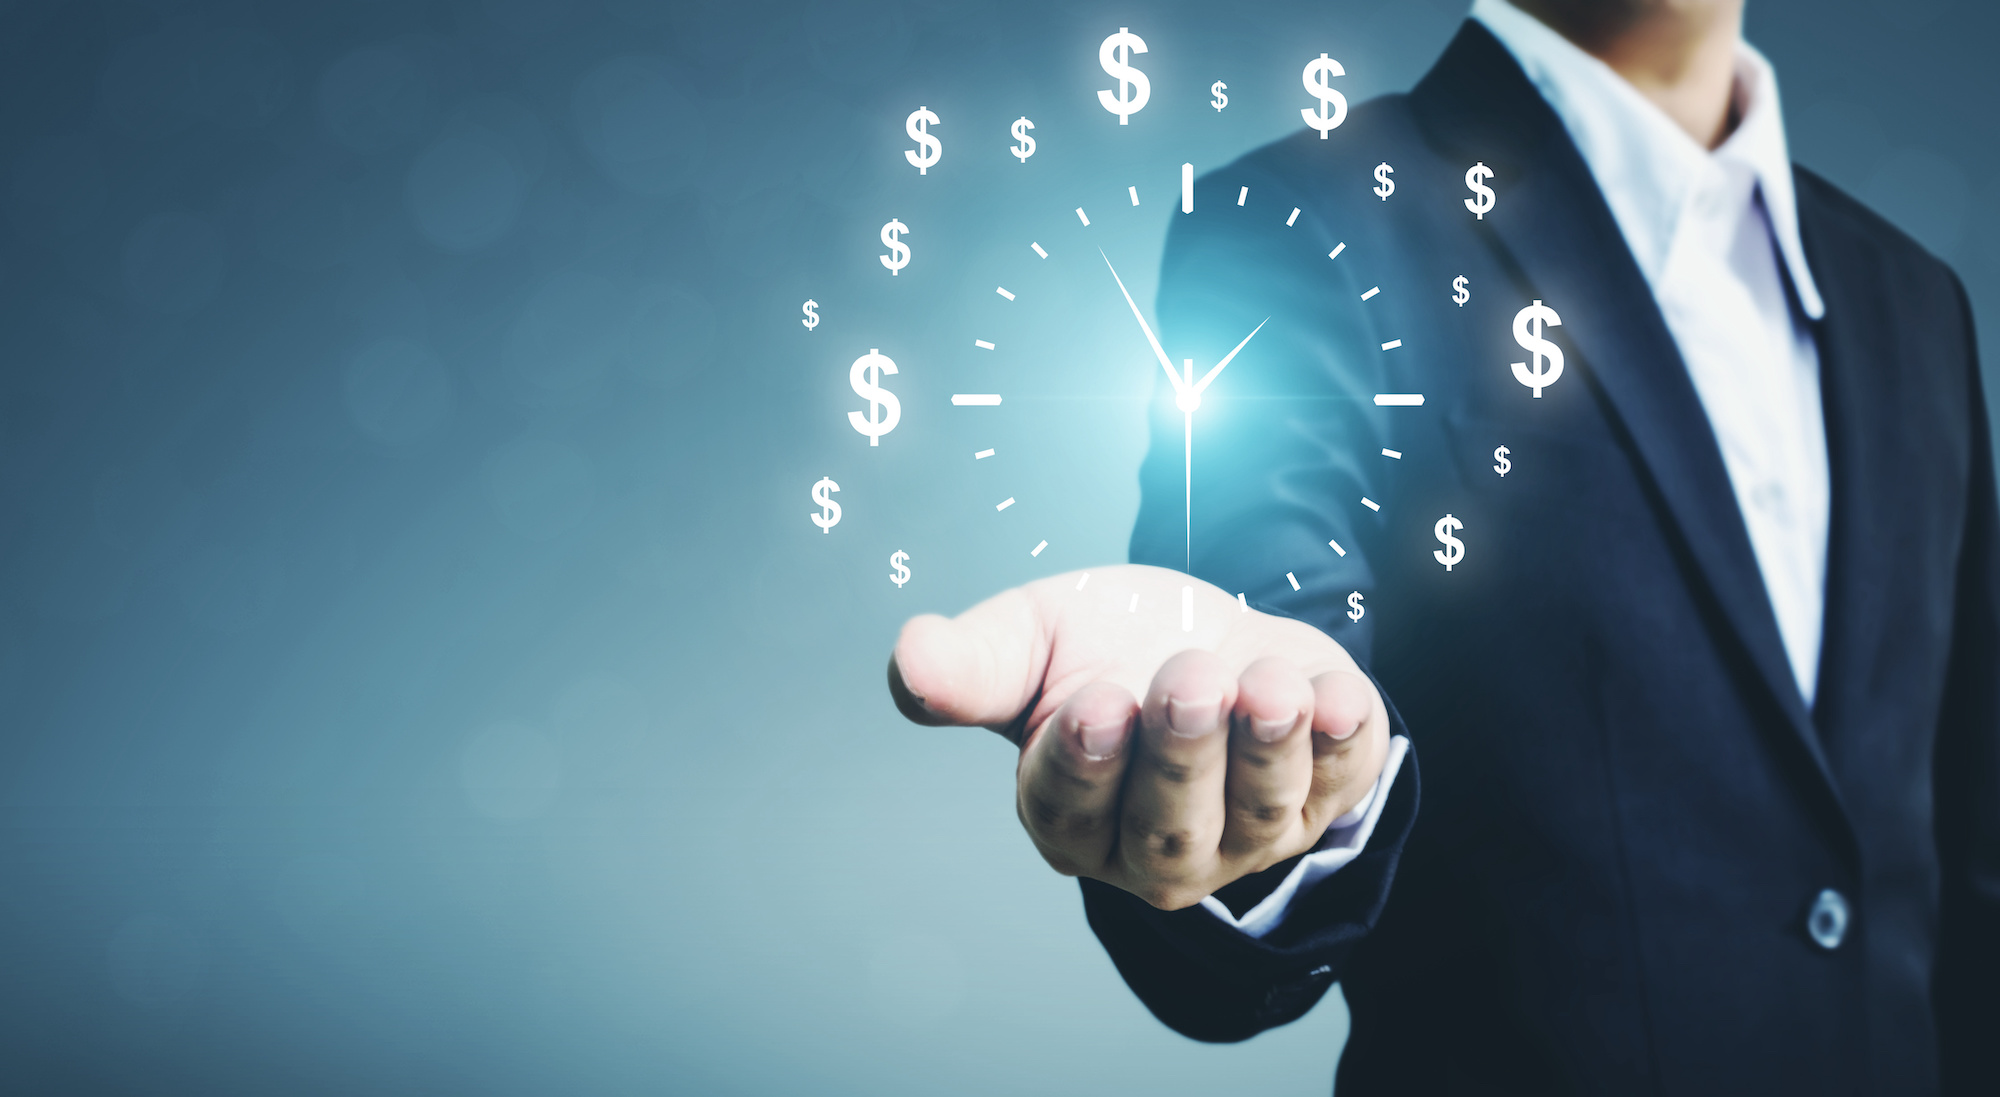 Man holding up glowing money and clock image